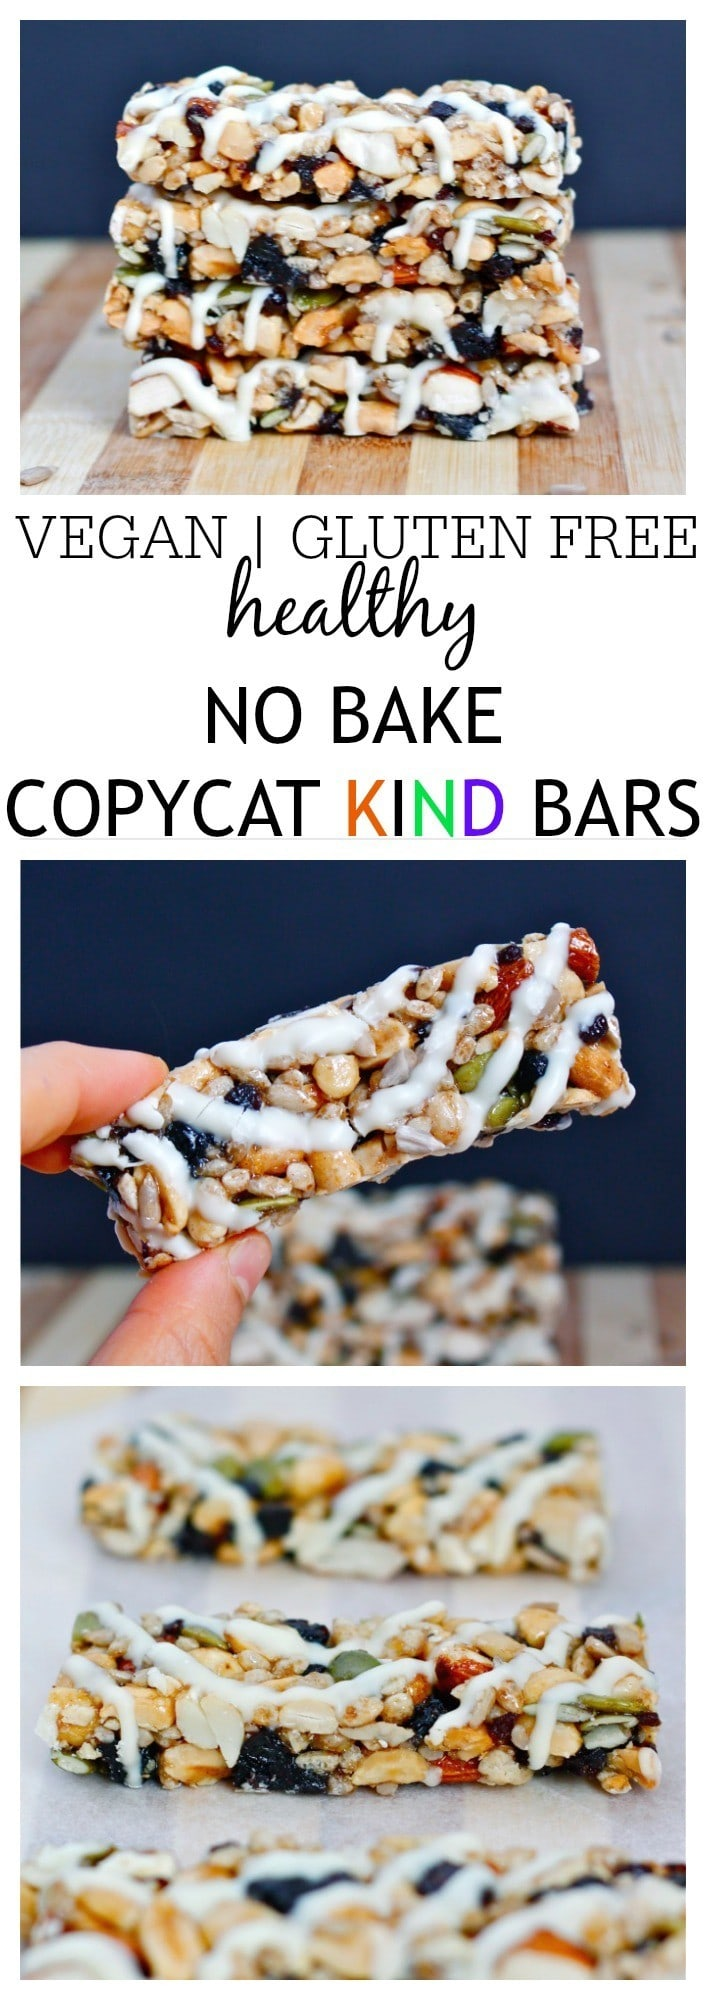 Healthy NO BAKE Copycat KIND Bars- These COPYCAT Kind Bars take 1 bowl and 10 minutes to whip up- They are also much cheaper than store bought and dare I say- More delicious than it's inspiration? Gluten free, vegan and with a protein optional boost! @thebigmansworld - thebigmansworld.com